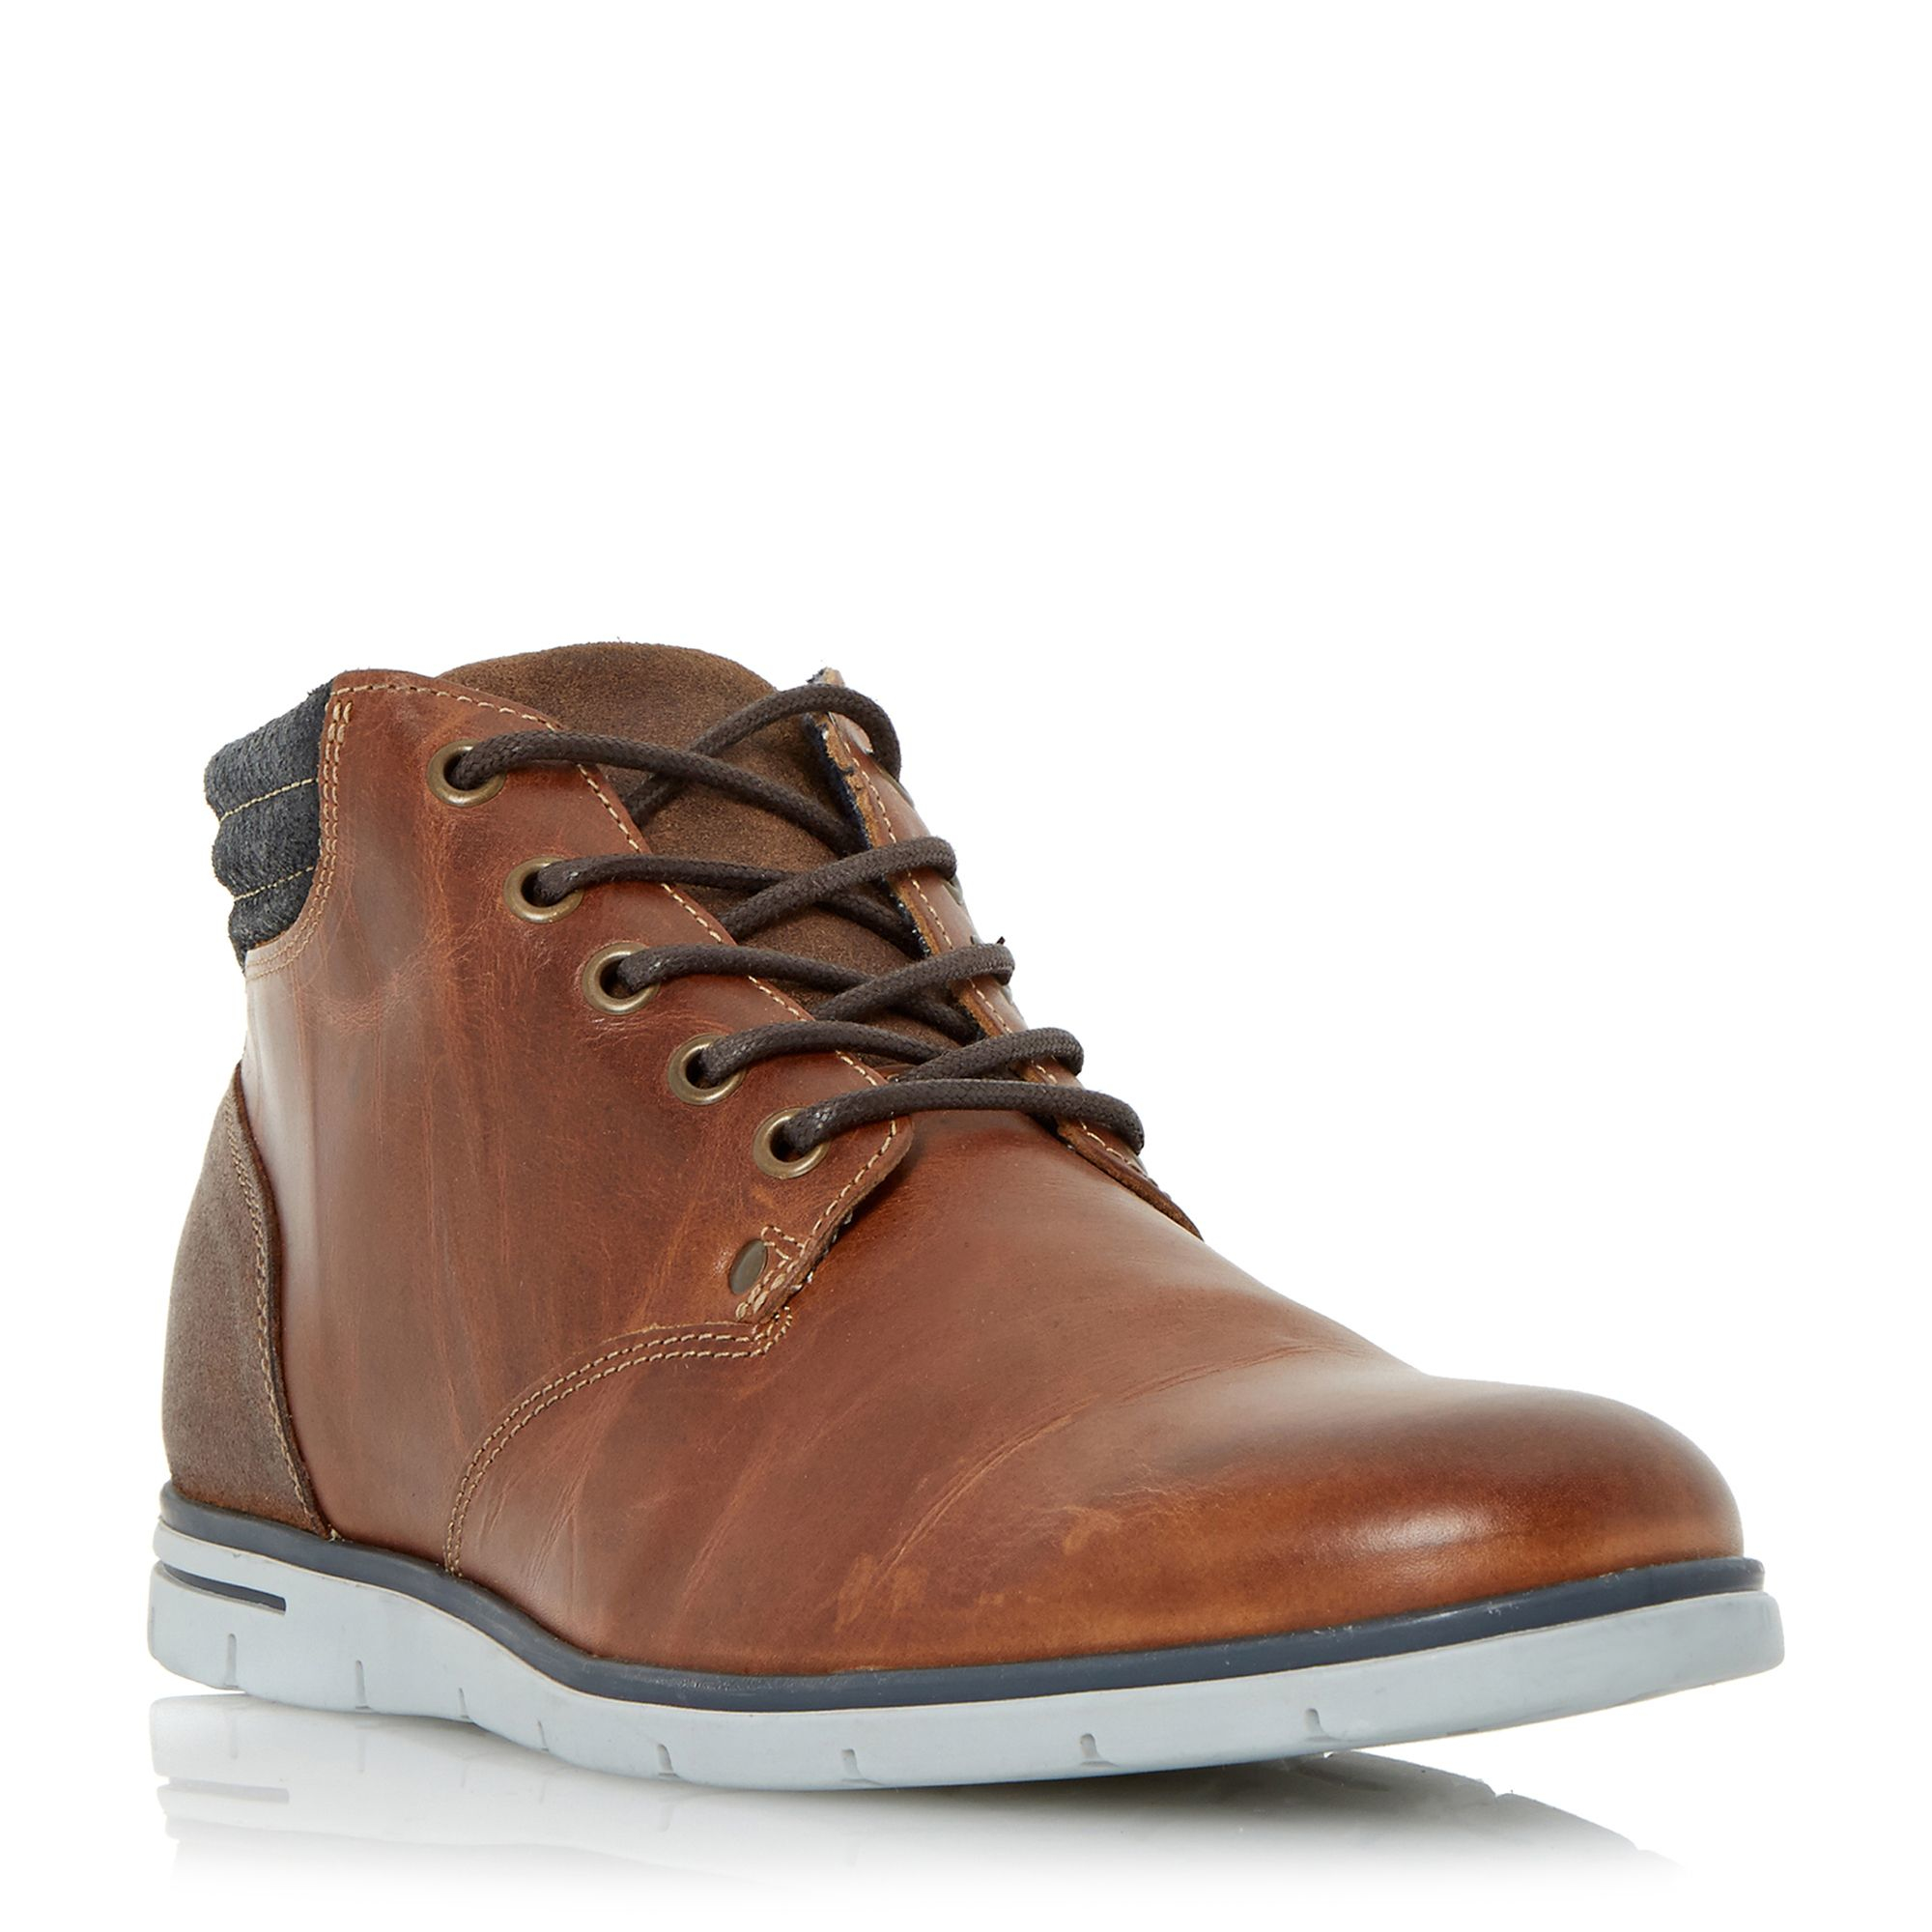 Dune Cane Wedge Sole Leather Lace Up Boots In Blue For Men